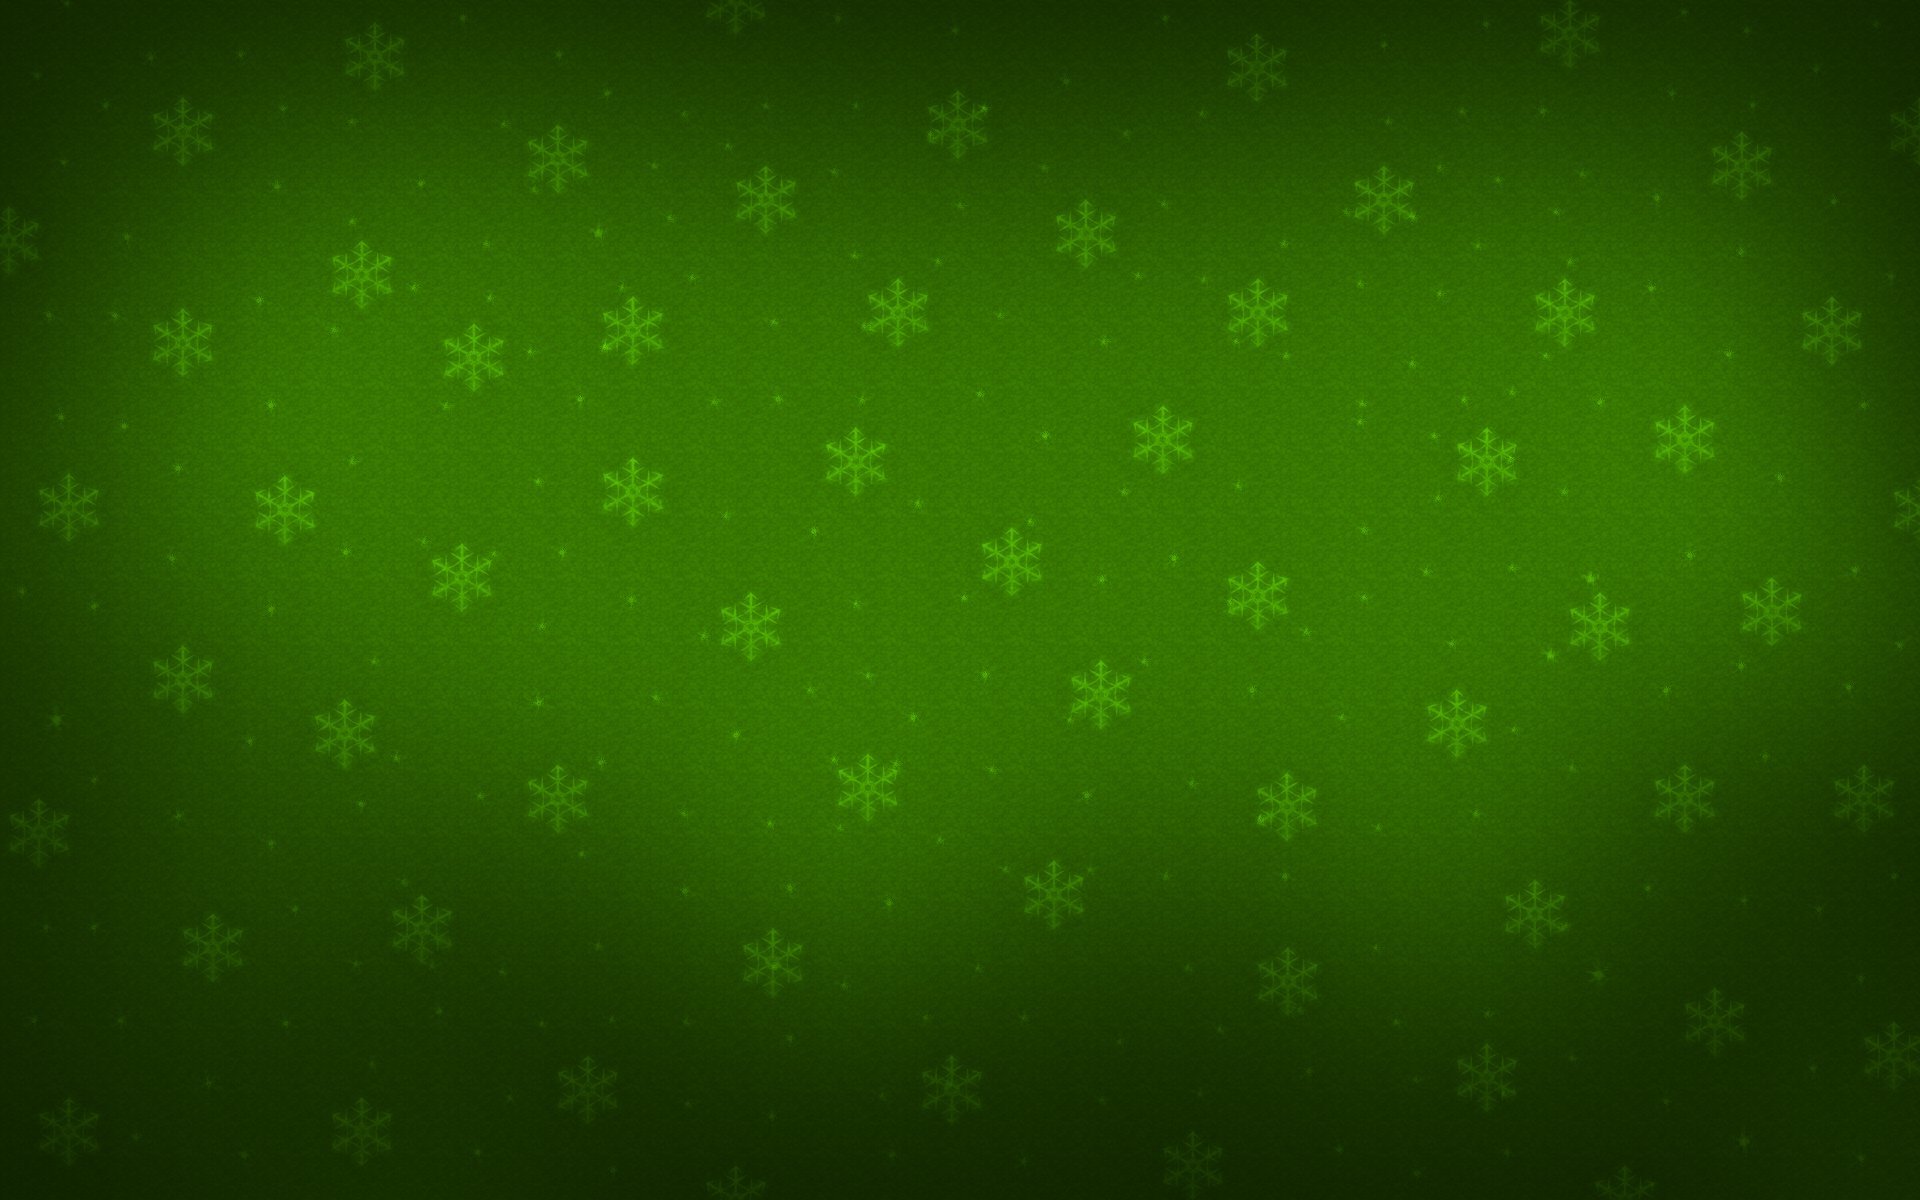 anatomy study guide green christmas background